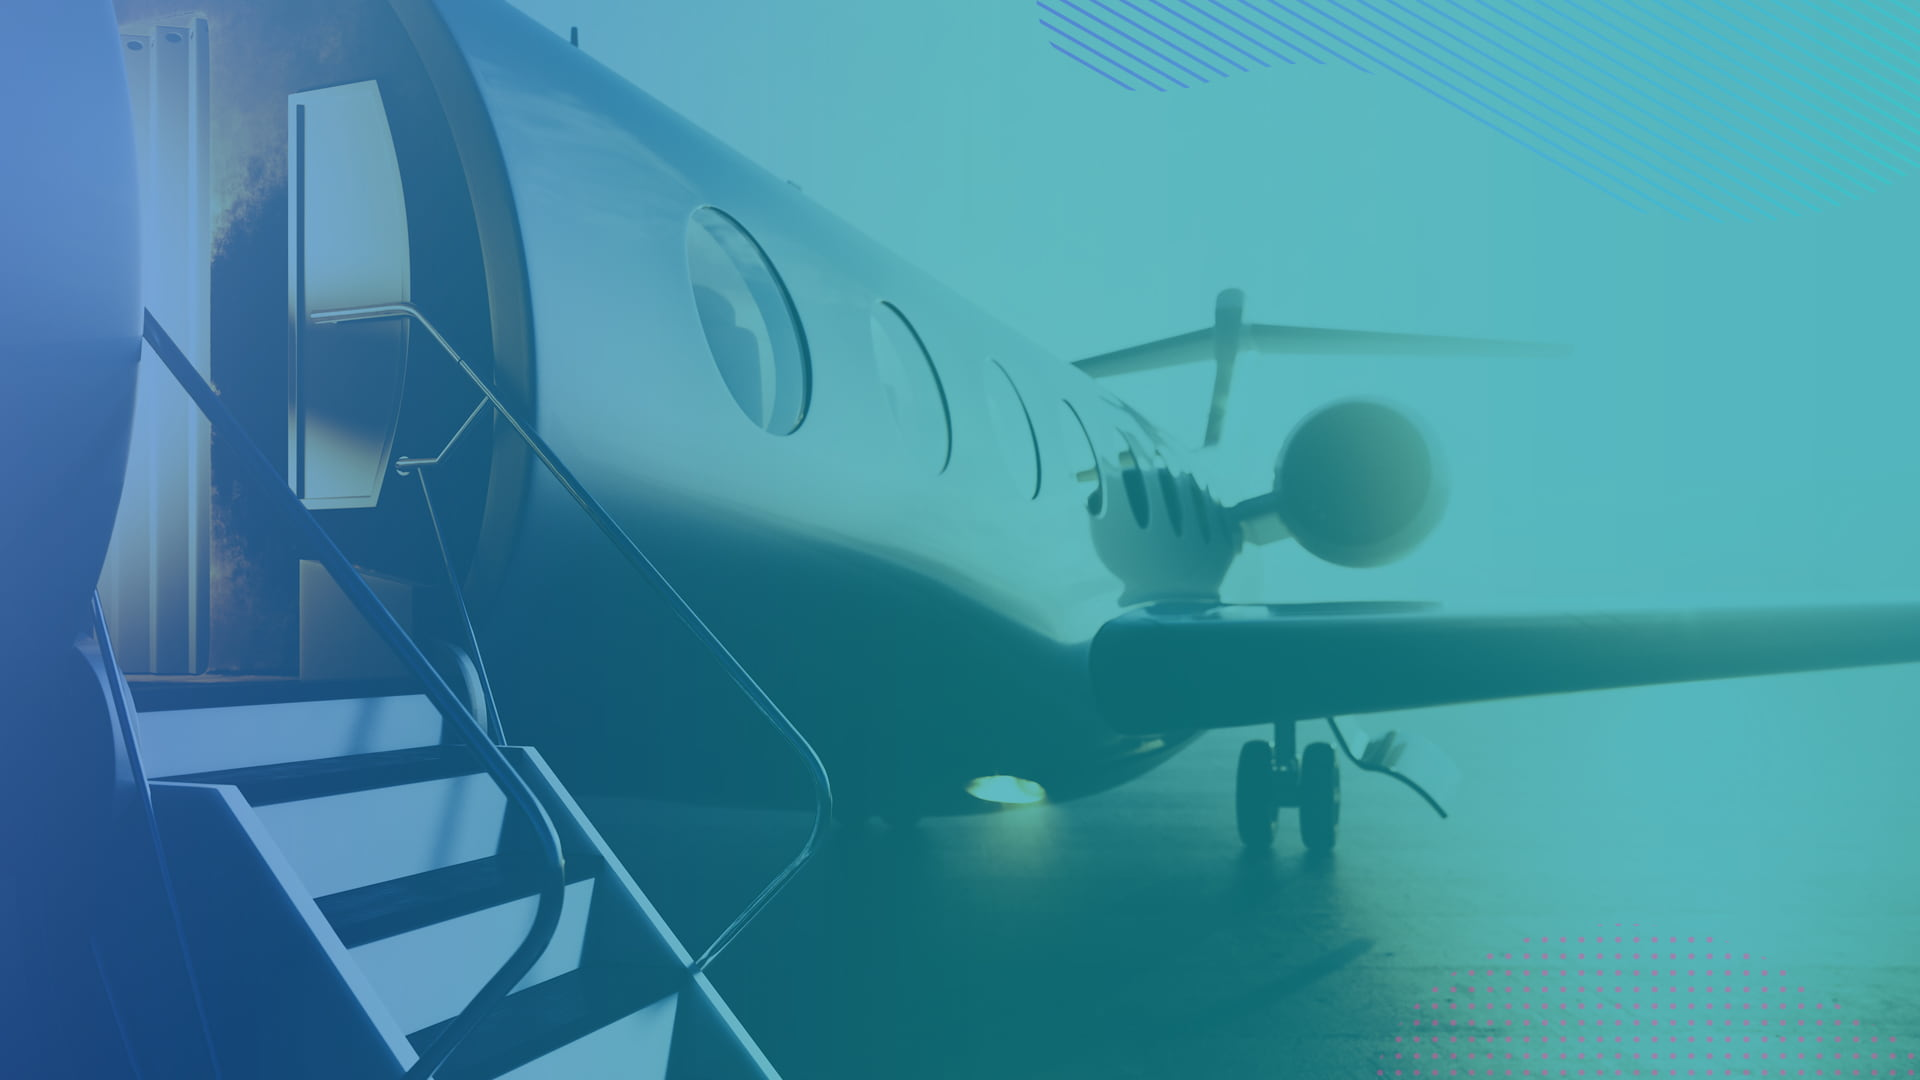 CUSTOM MOBILE BOOKING ENGINE APPLICATION FOR PRIVATE AIR TRAVEL INDUSTRY